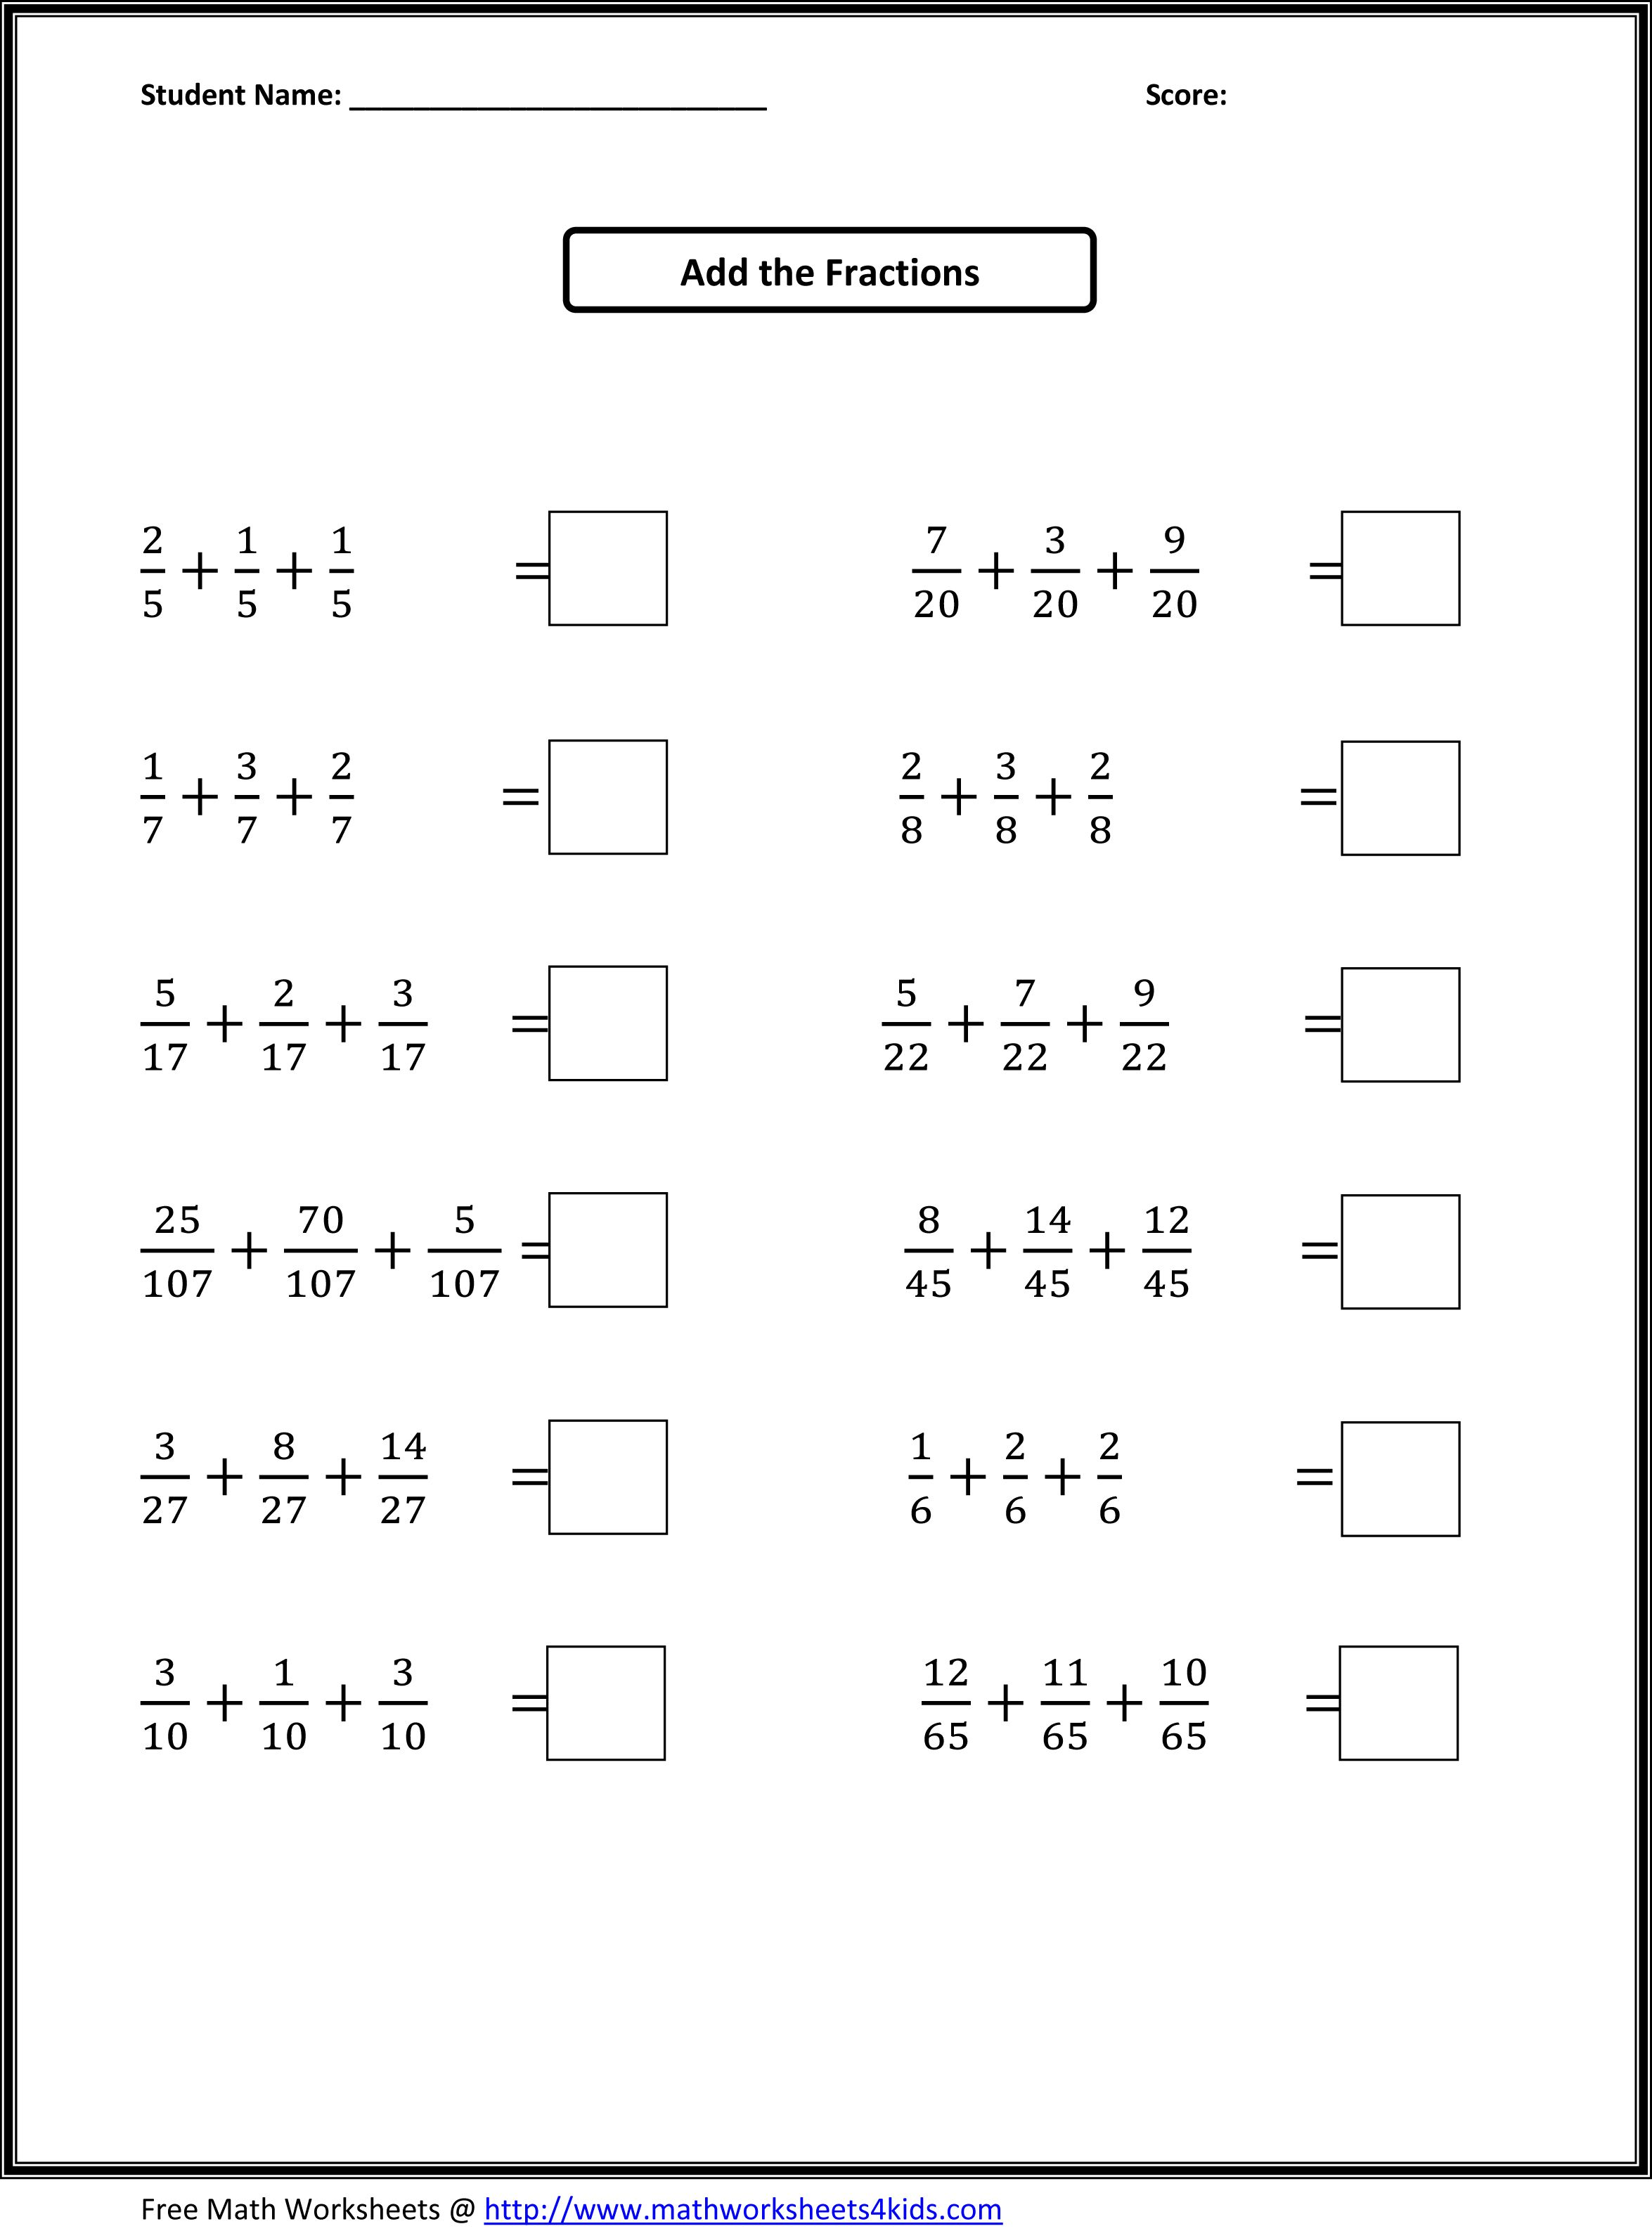 Worksheets 4th Grade Algebra Worksheets printable worksheets by grade level and skill teaching ideas skill